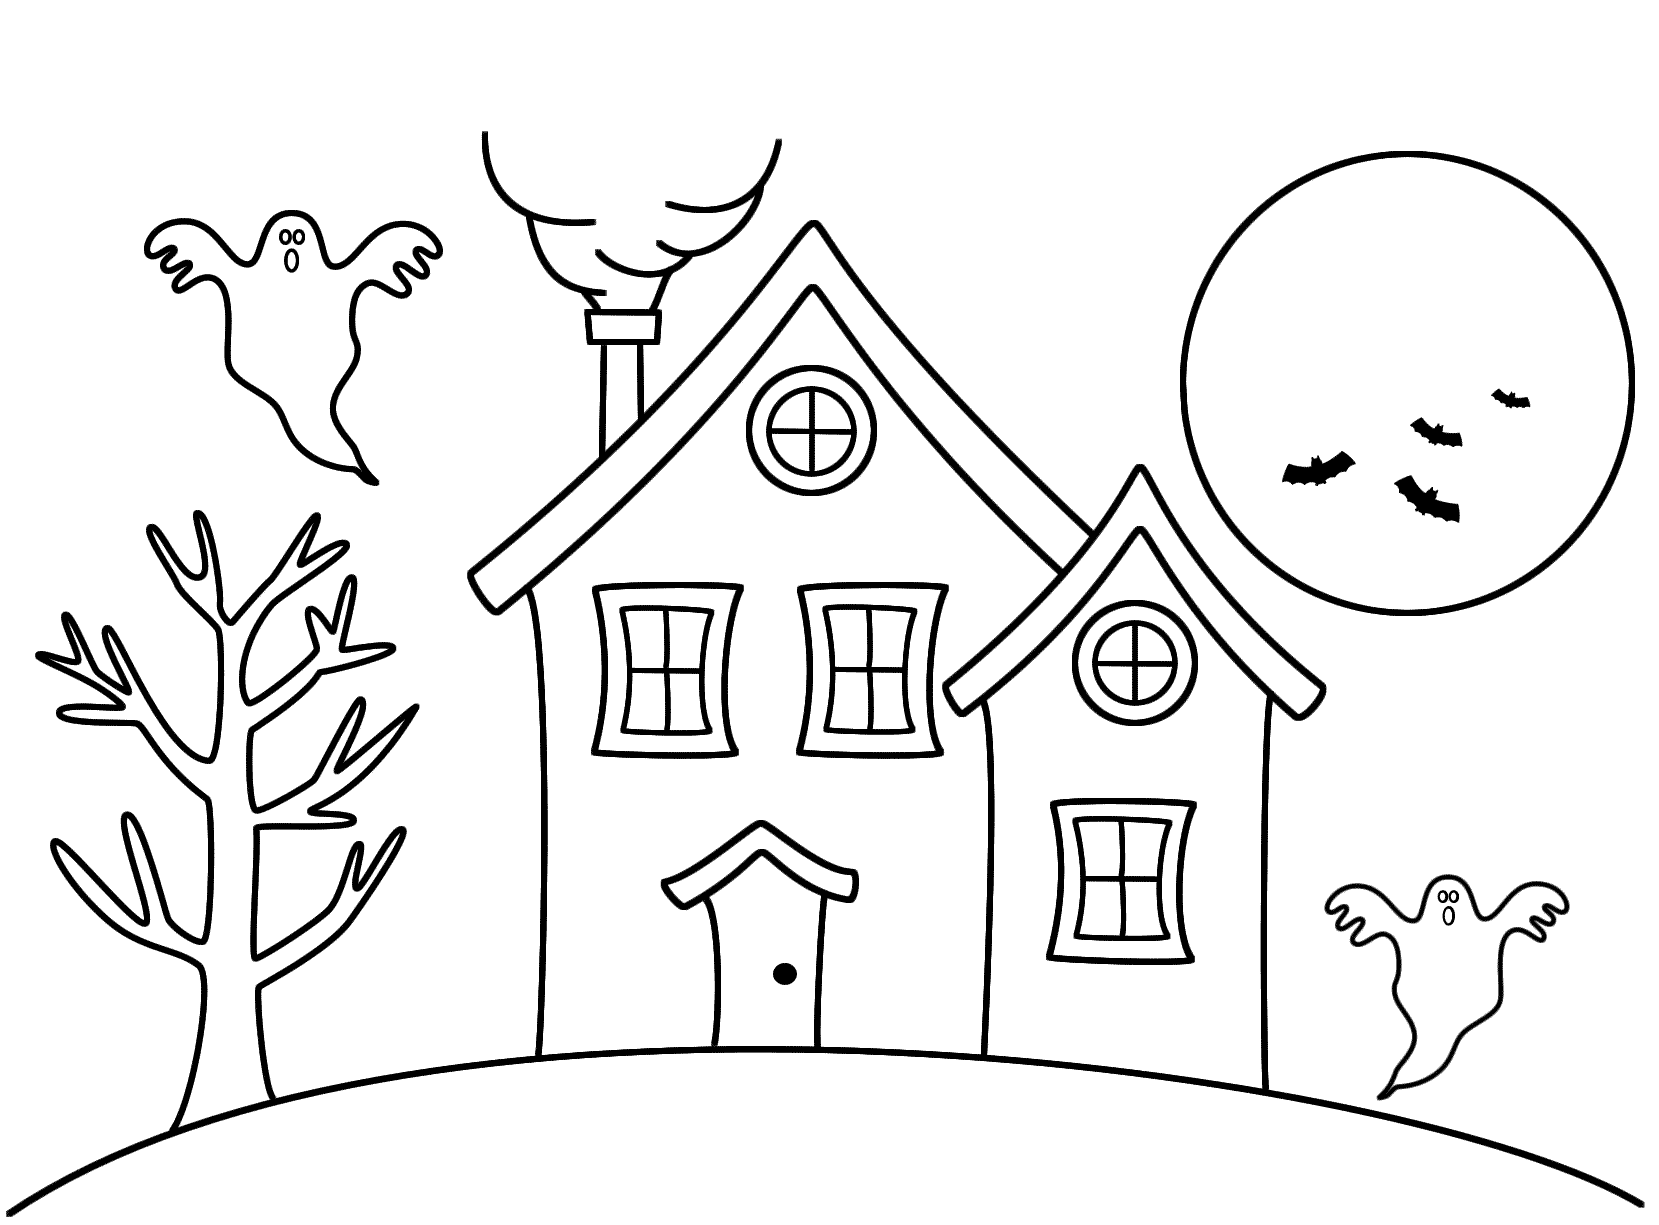 Haunted clipart easy cartoon. House drawing at getdrawings